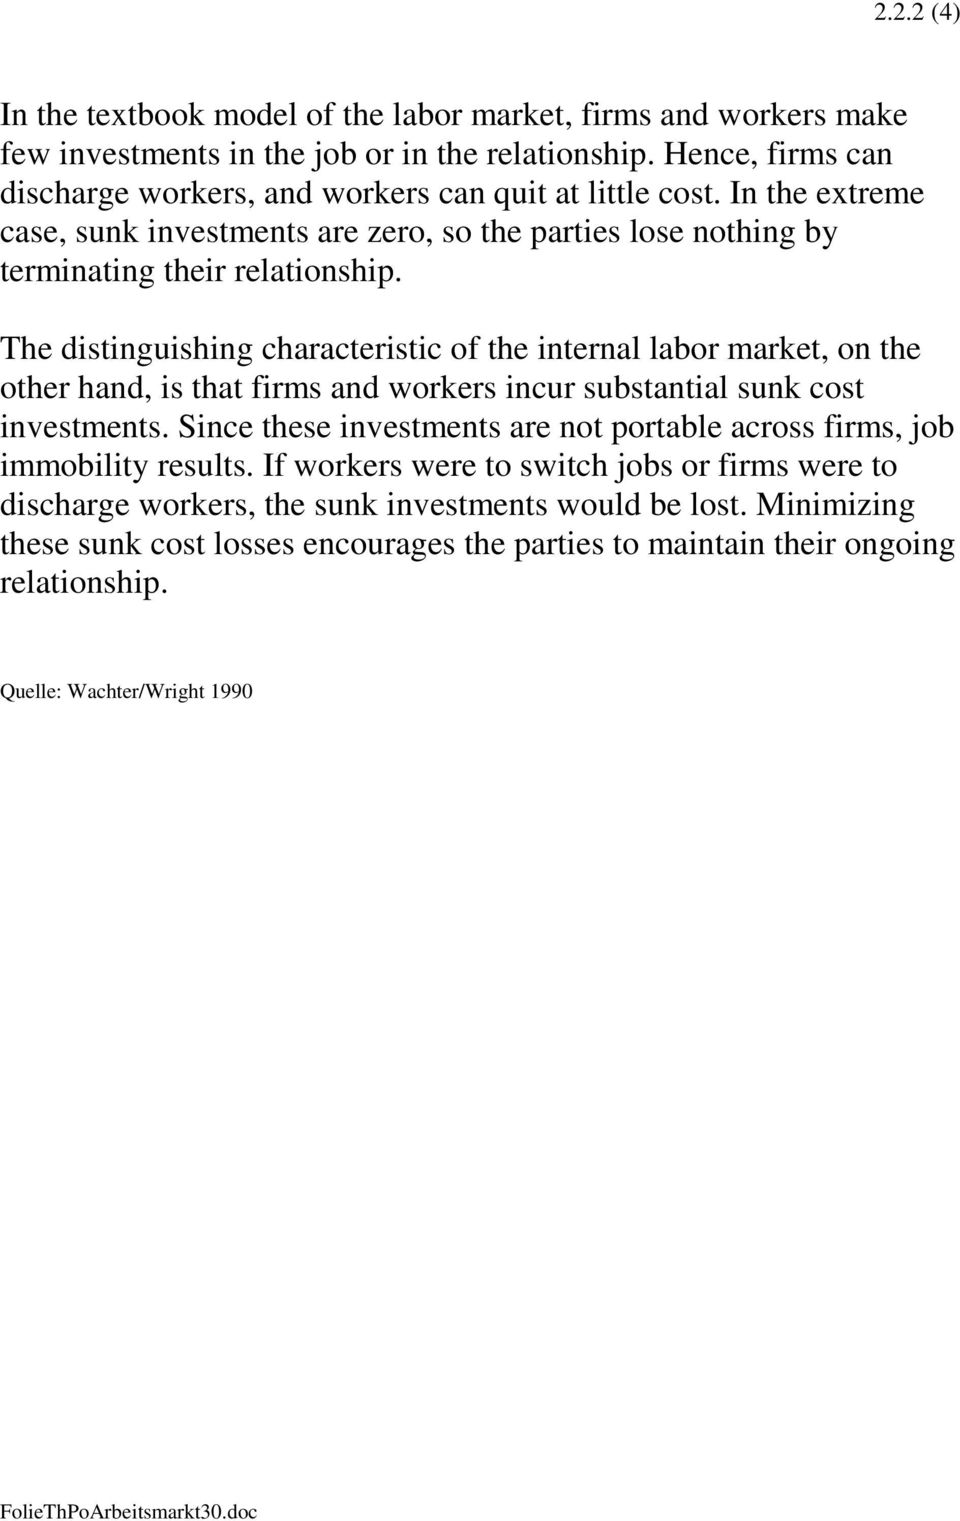 The distinguishing characteristic of the internal labor market, on the other hand, is that firms and workers incur substantial sunk cost investments.